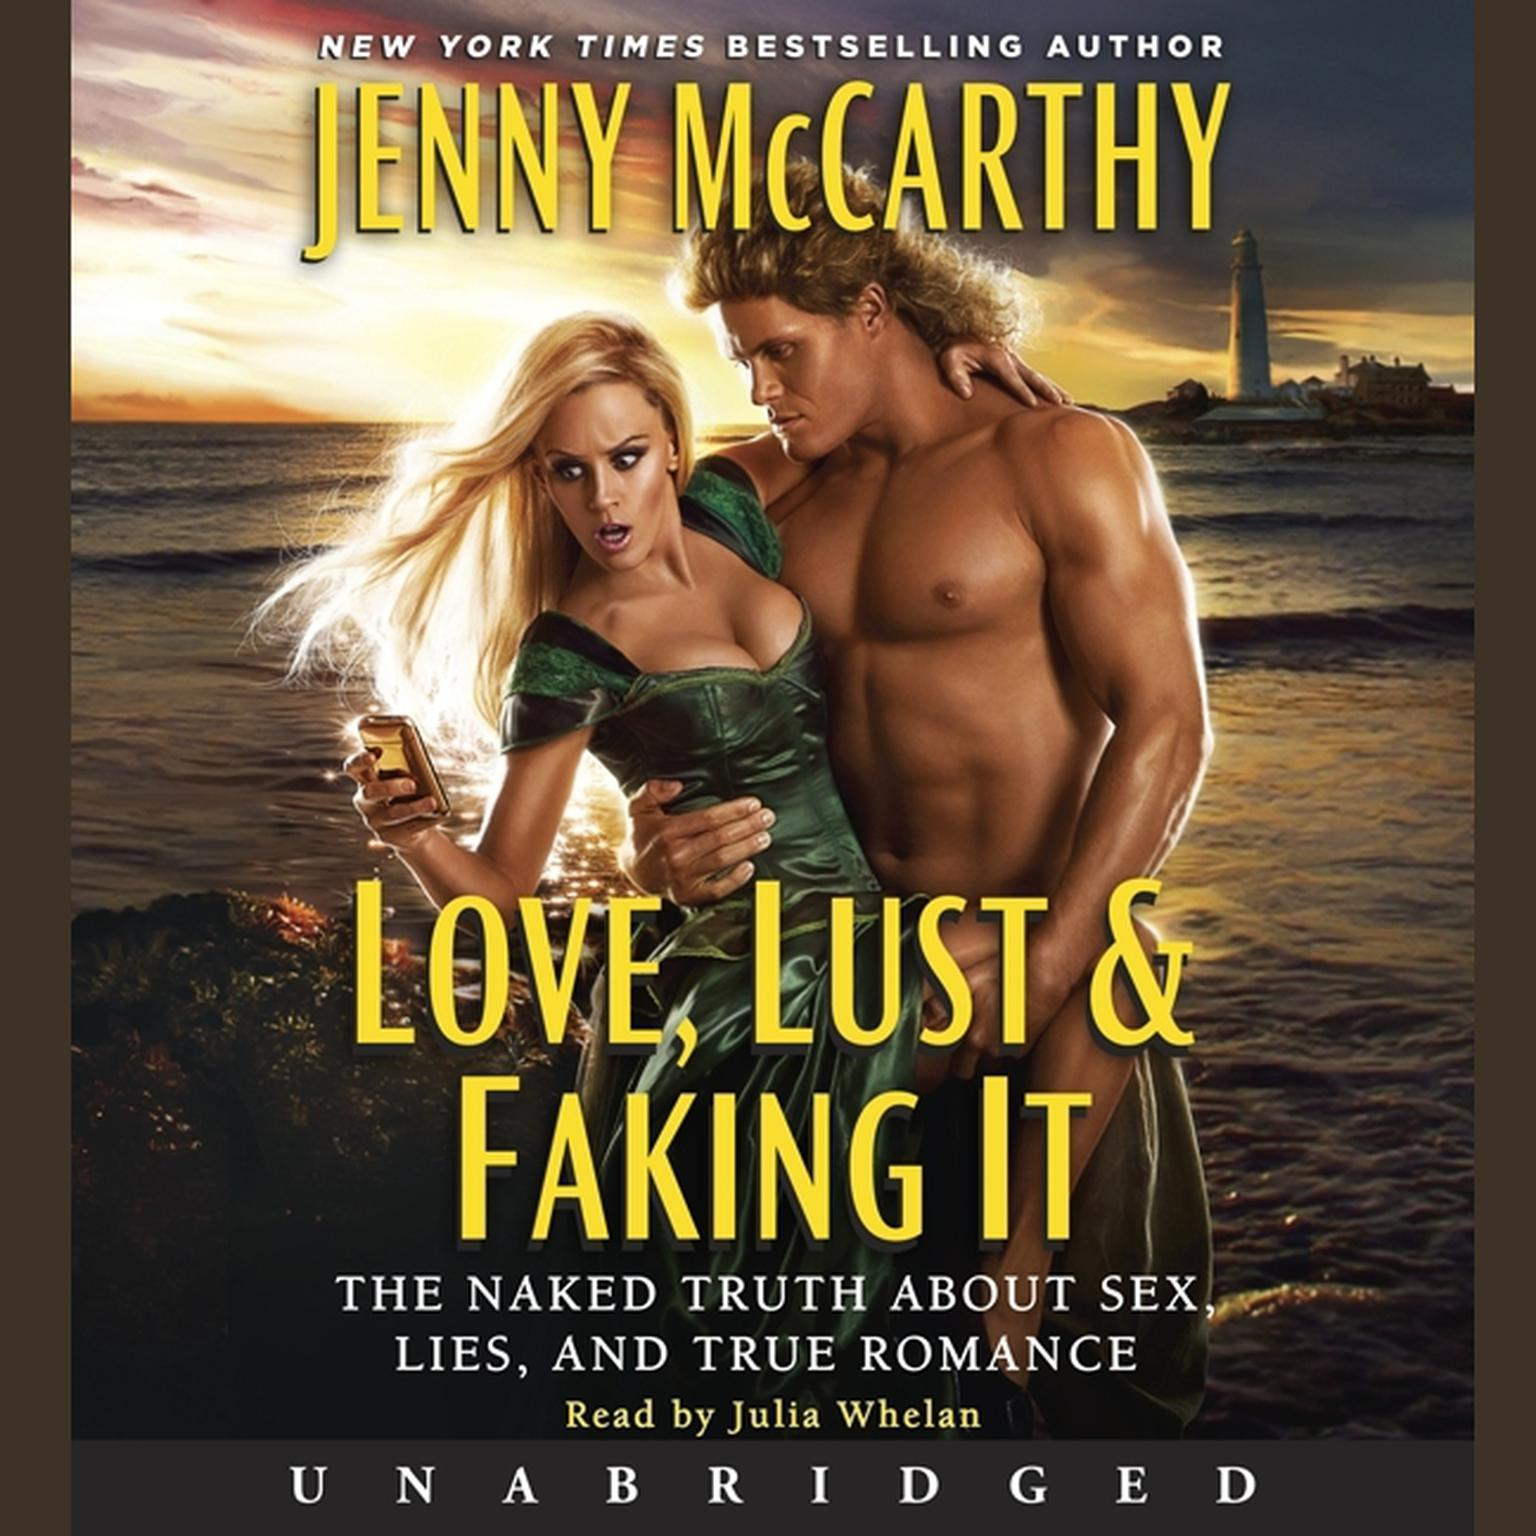 Printable Love, Lust & Faking It: The Naked Truth About Sex, Lies, and True Romance Audiobook Cover Art